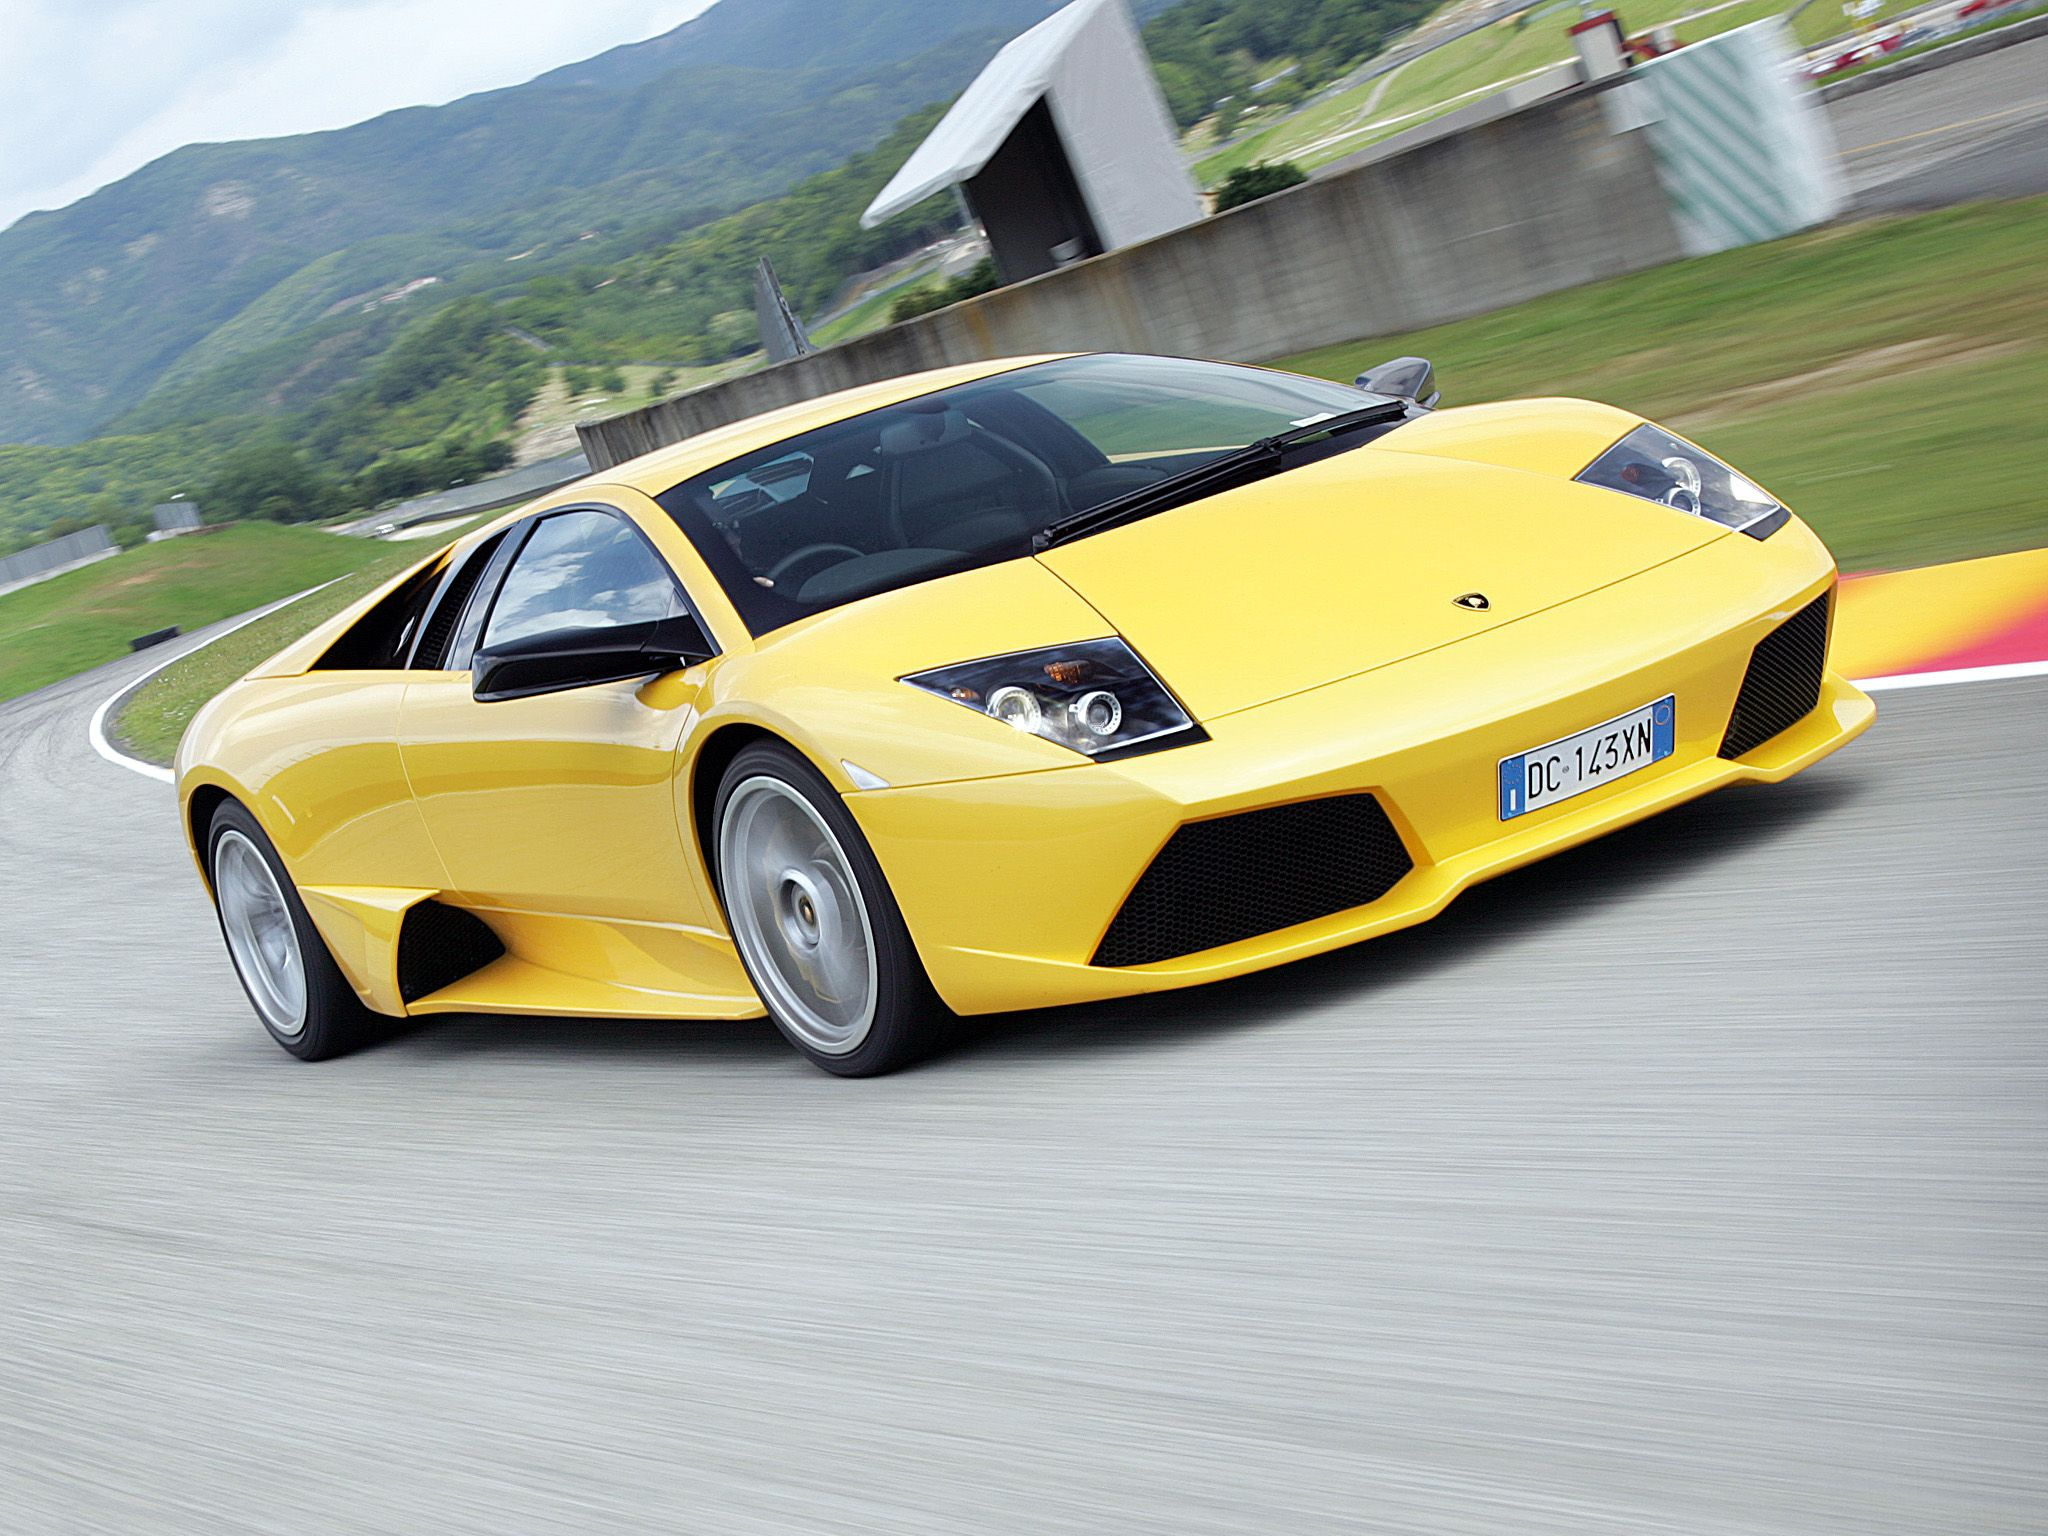 Get 20 used lamborghini ideas on pinterest without signing up litter pizza golf sets for sale and used lamborghini for sale